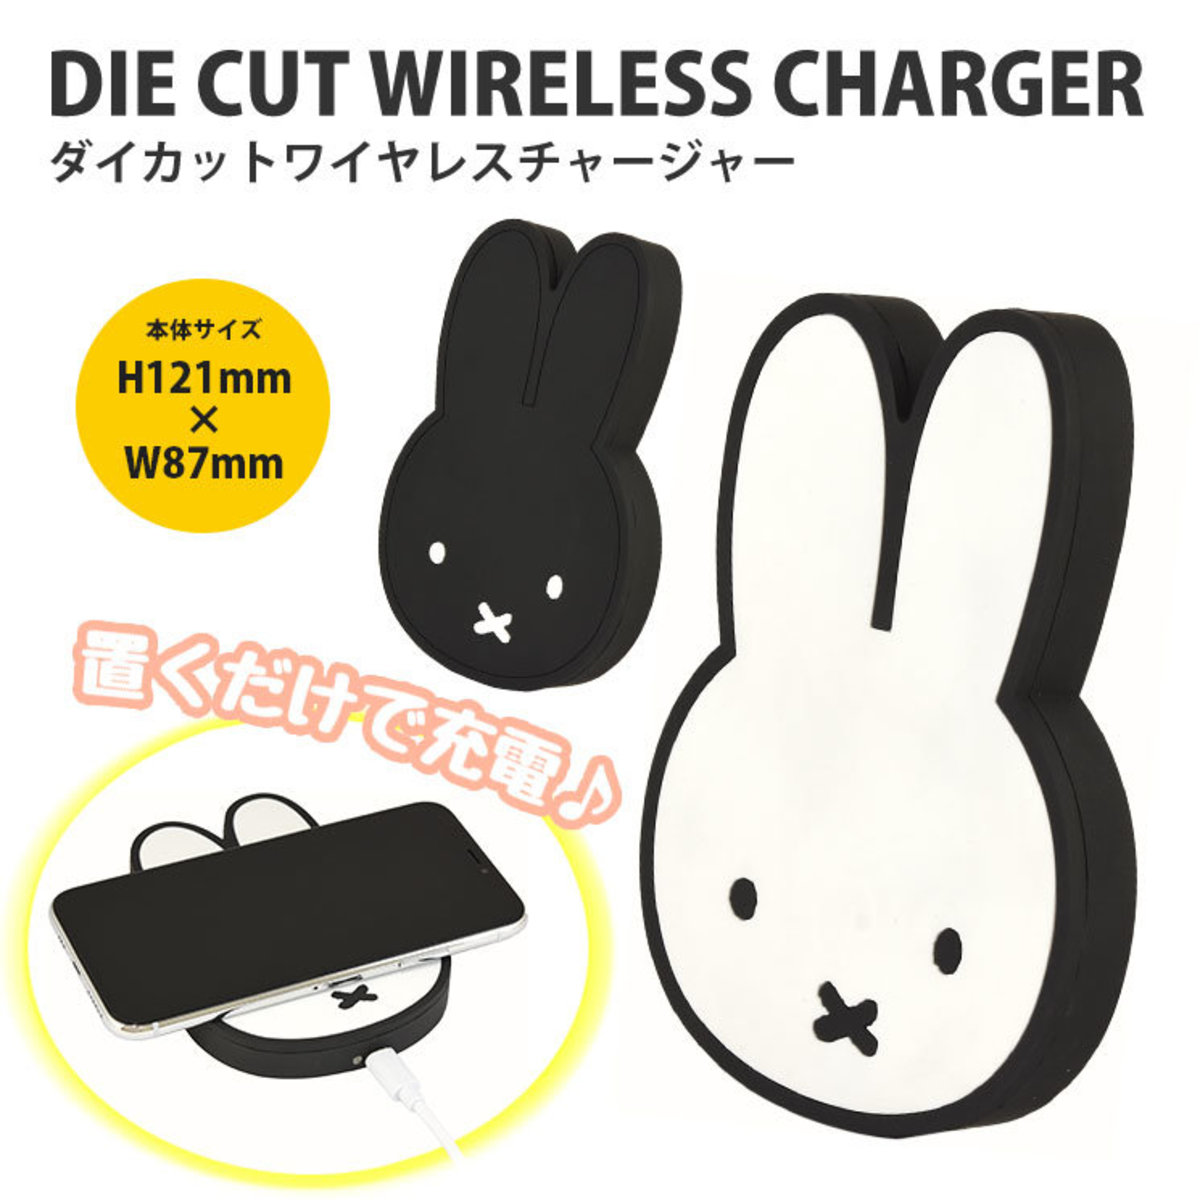 (Black Miffy) Japan Miffy Die-Cur Wireless Charger